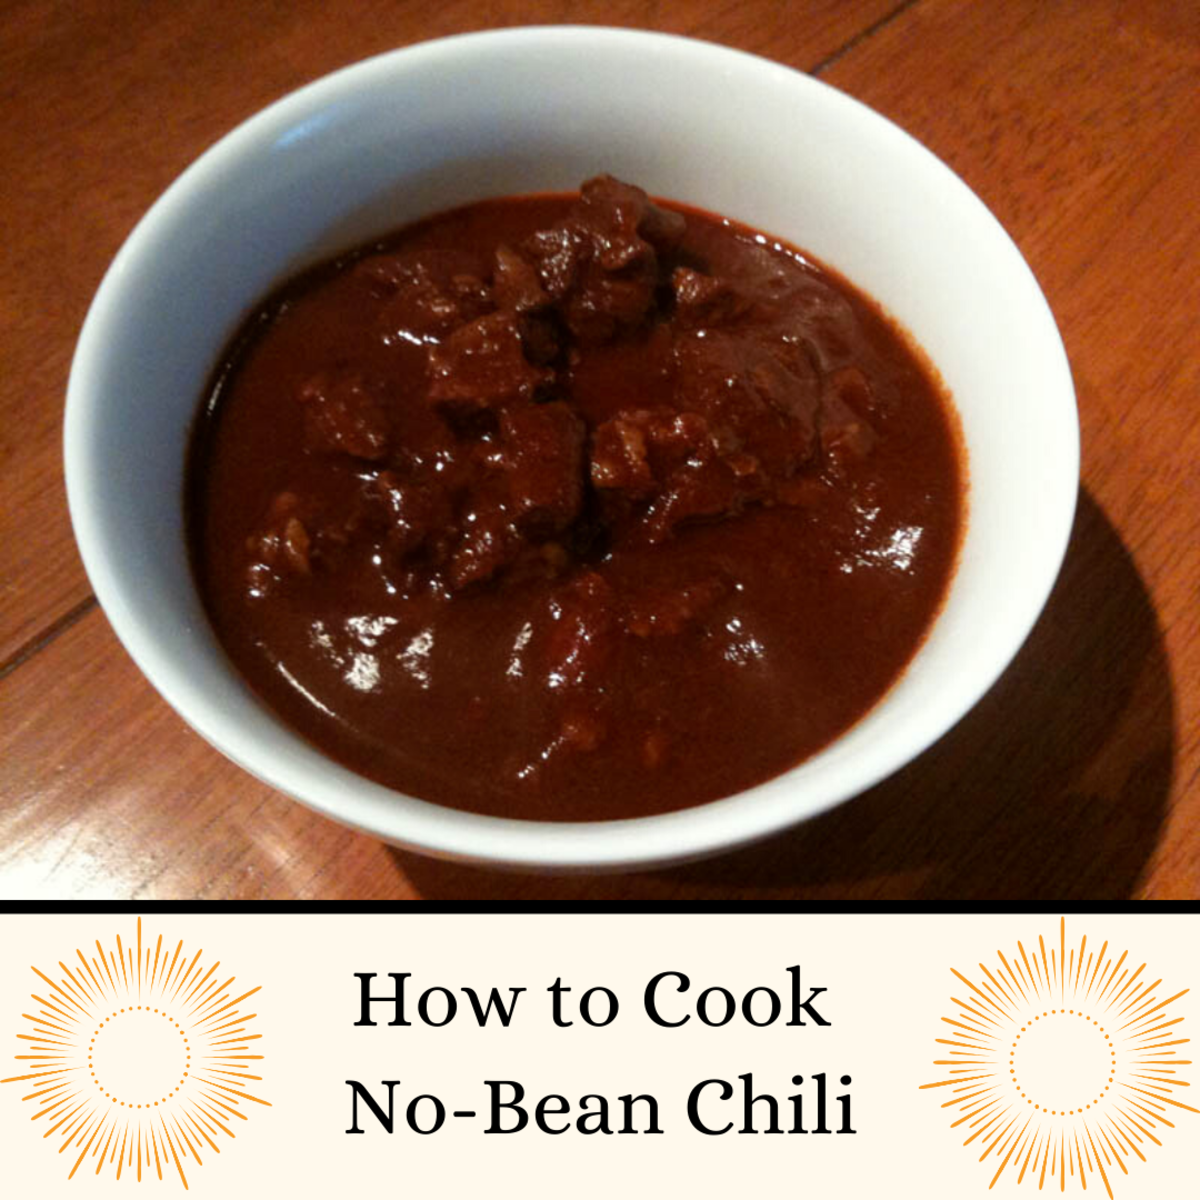 The World's Best No-Bean Chili